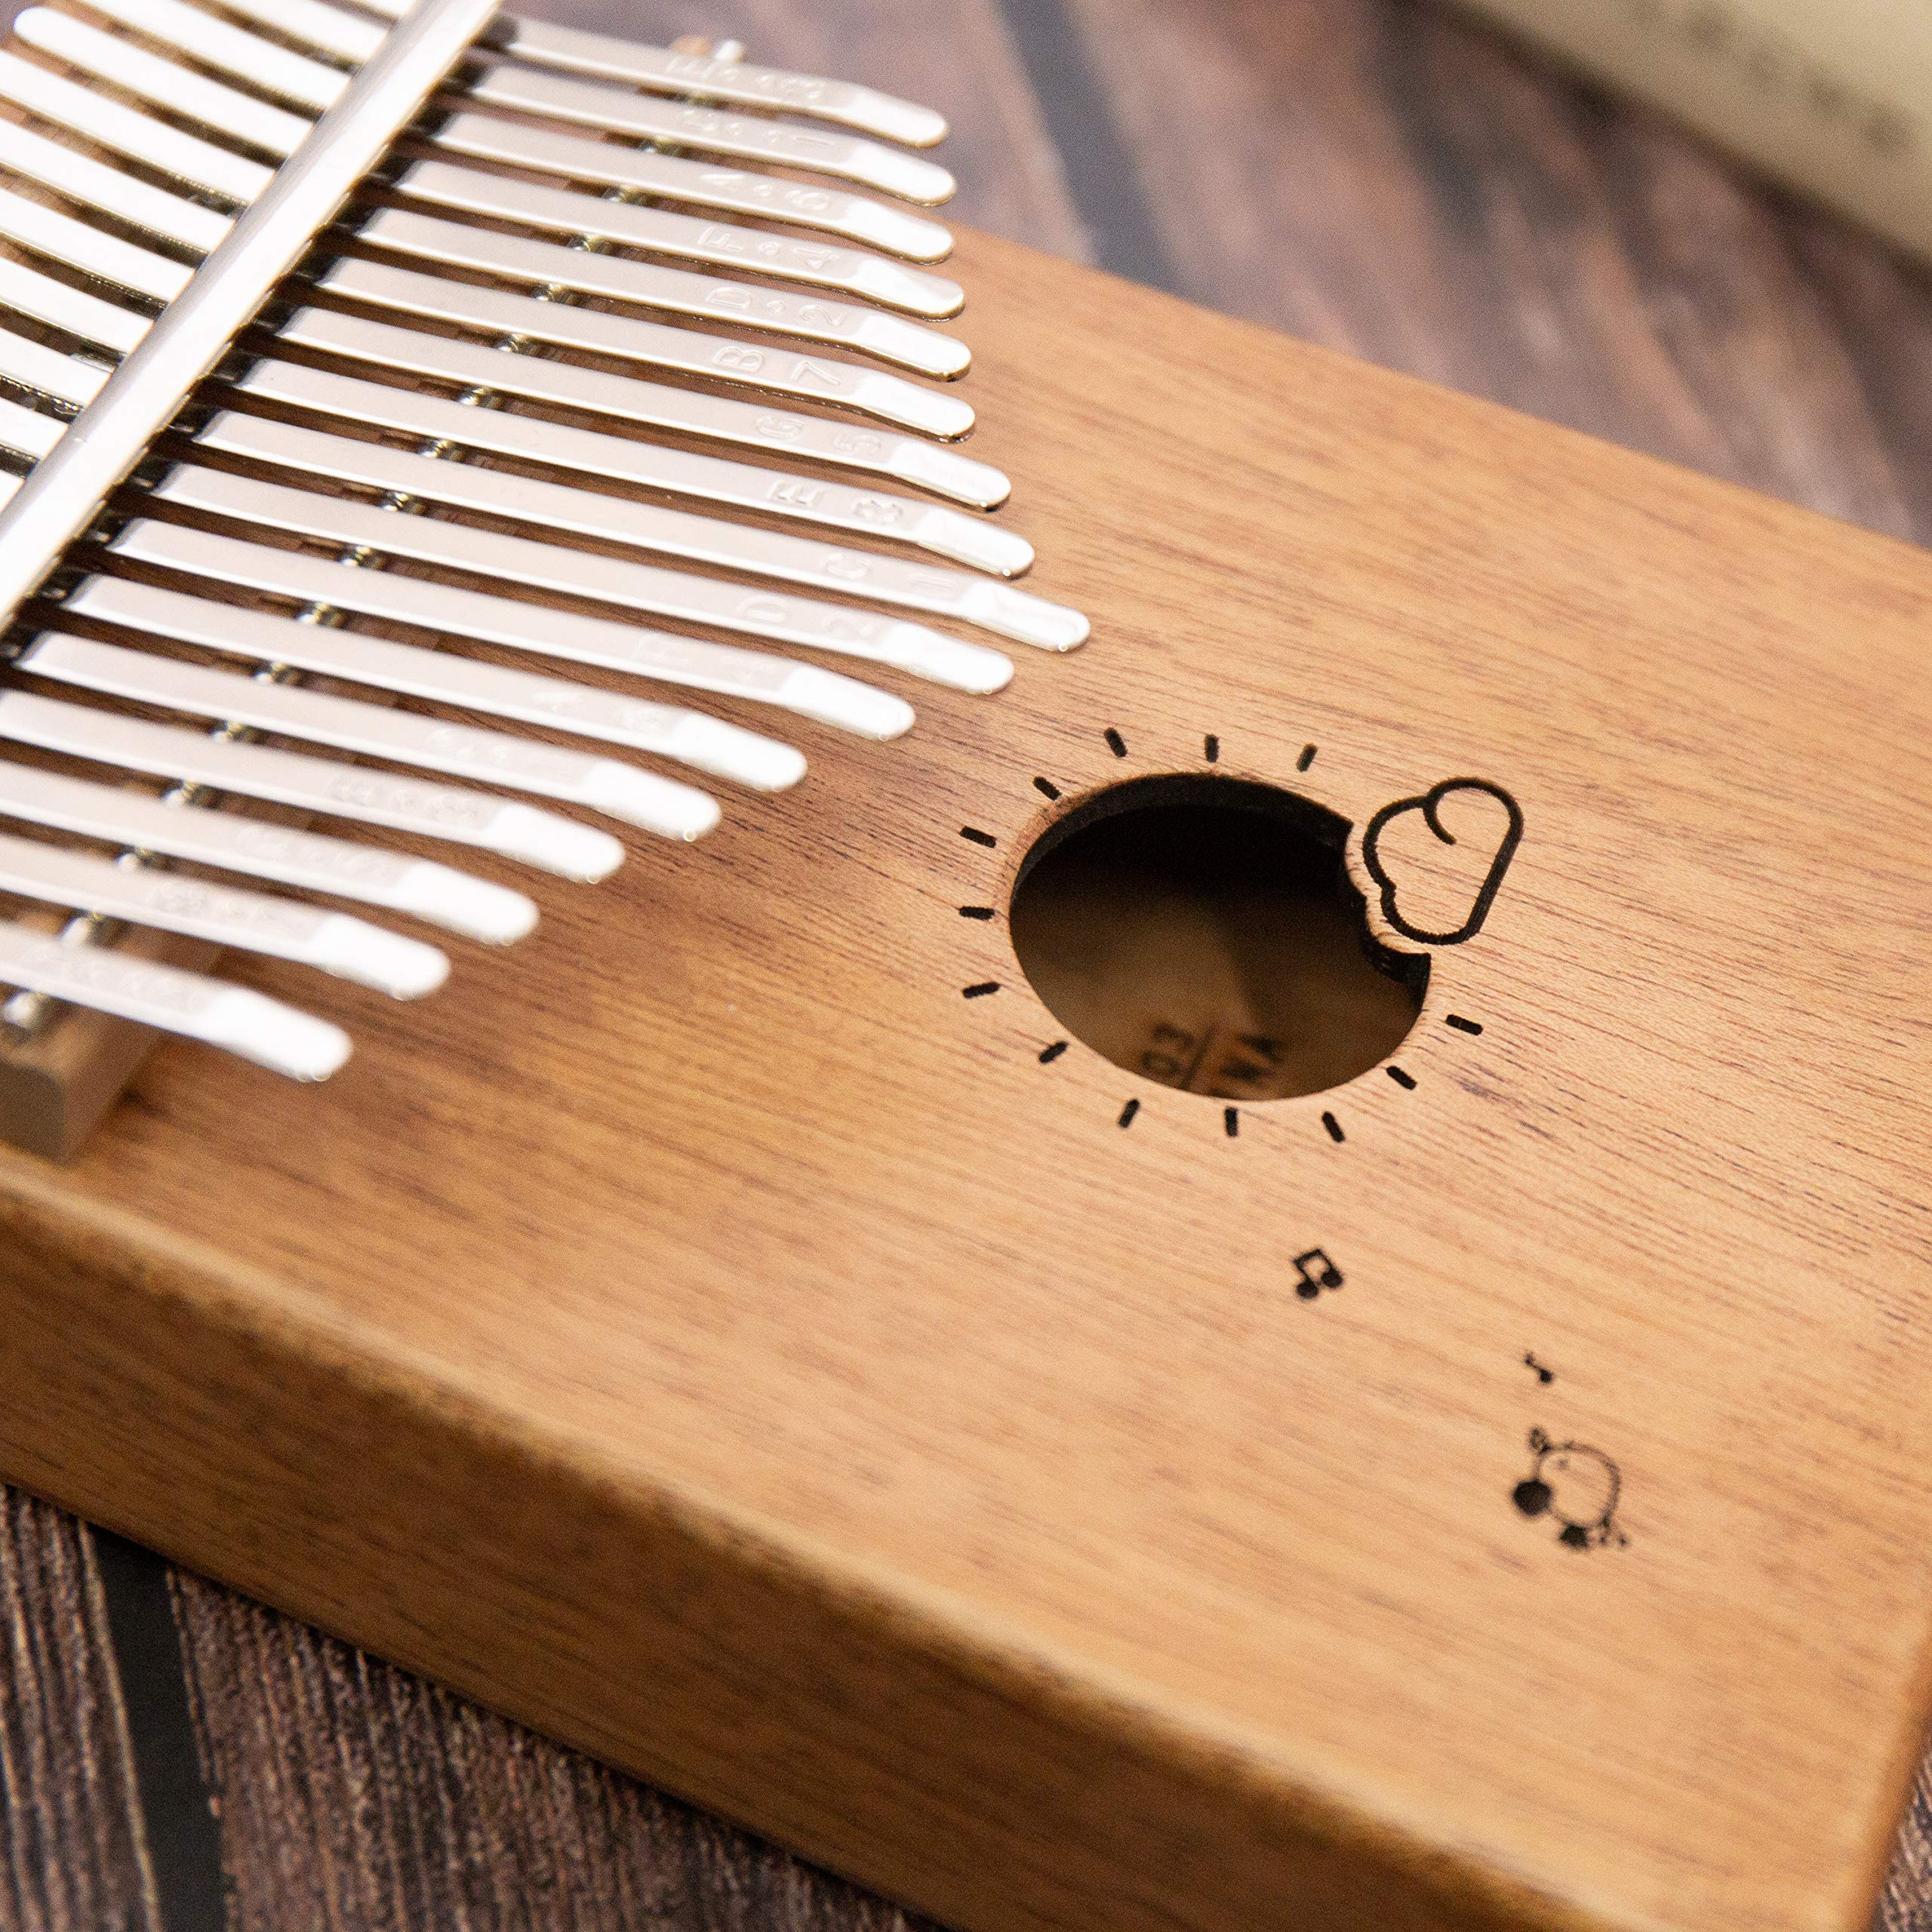 Kalimba 17 Keys Thumb Finger Piano - Mbira - Solid Mahogany and Portable with Carrying Bag and Instructions by GSM Brands (Image #4)